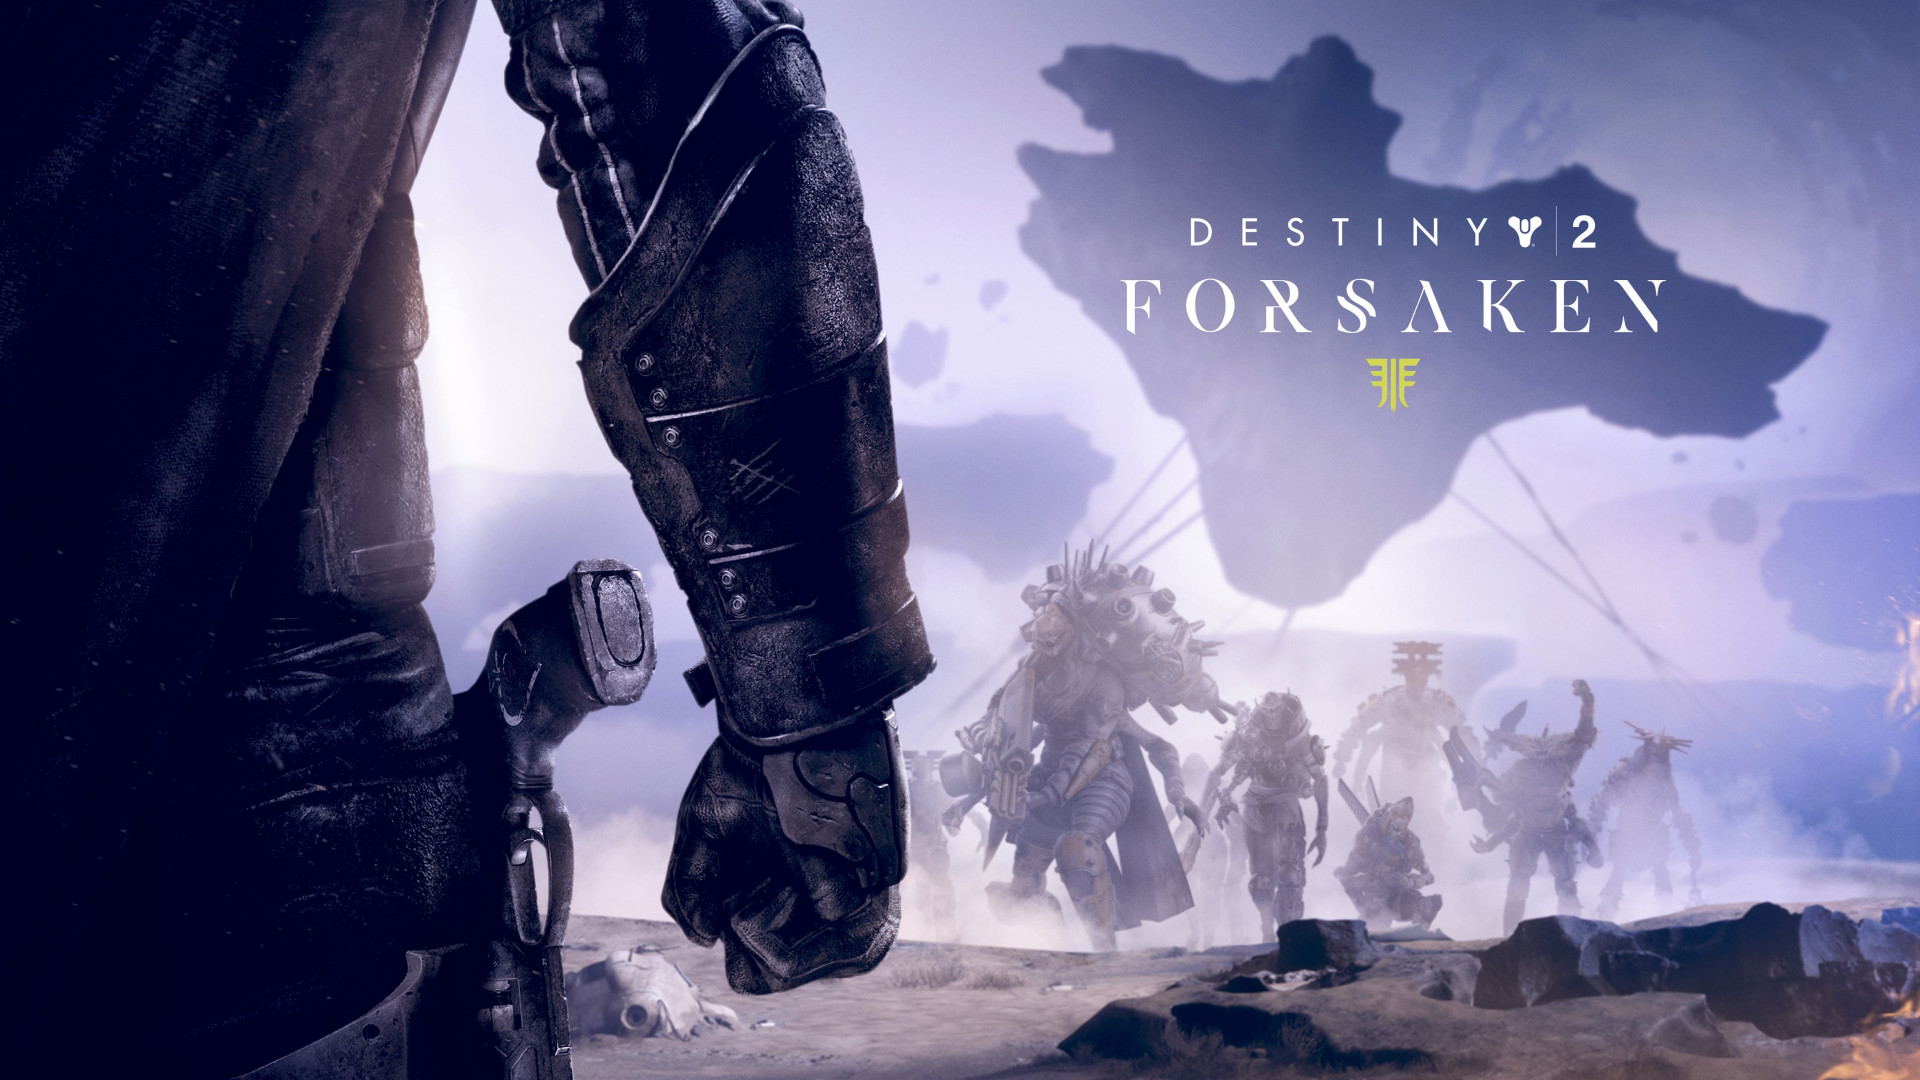 Destiny 2 Forsaken wallpaper 1920x1080